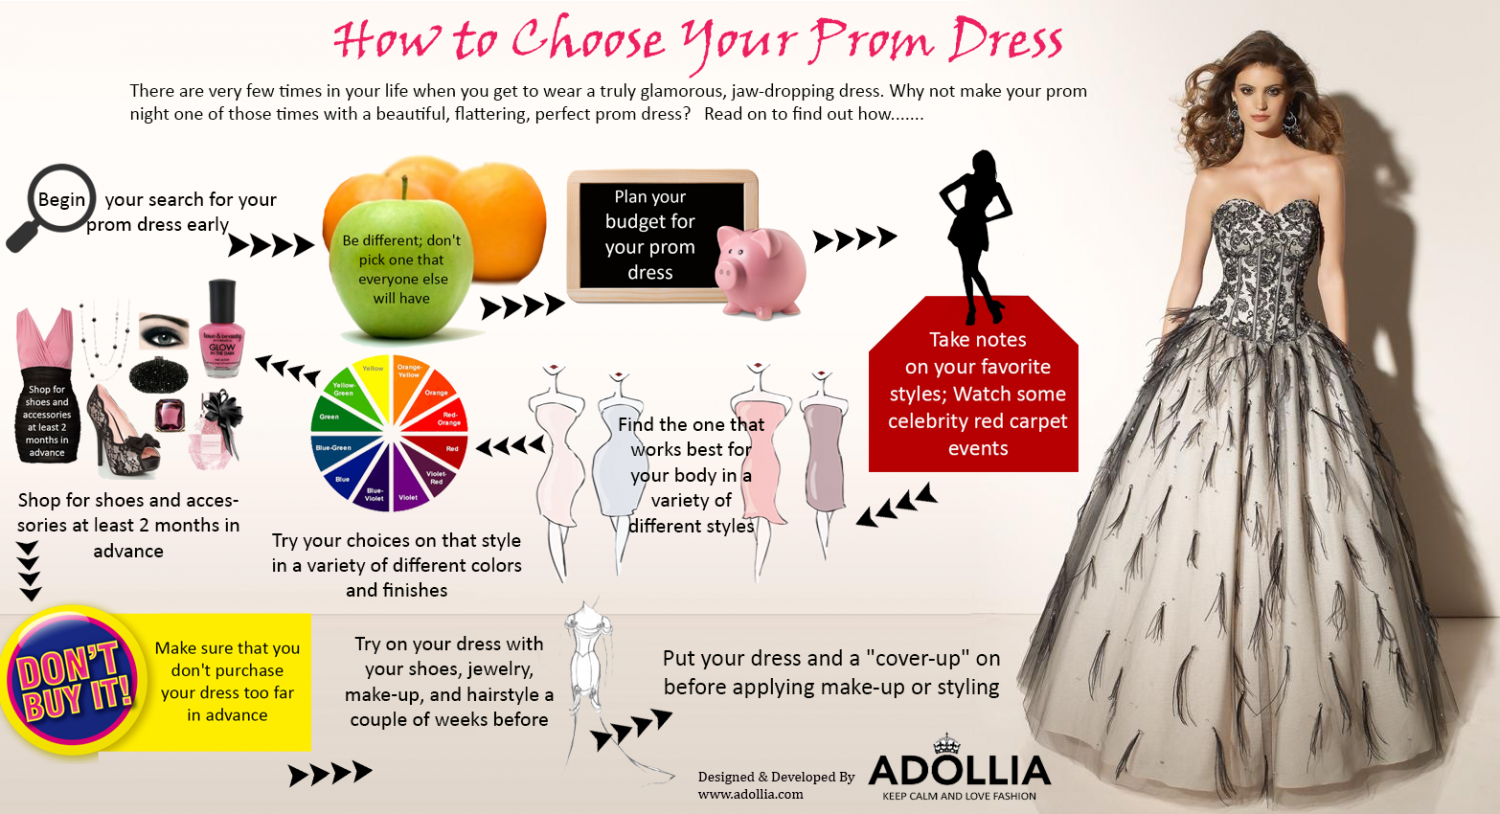 How to choose your prom dress Infographic